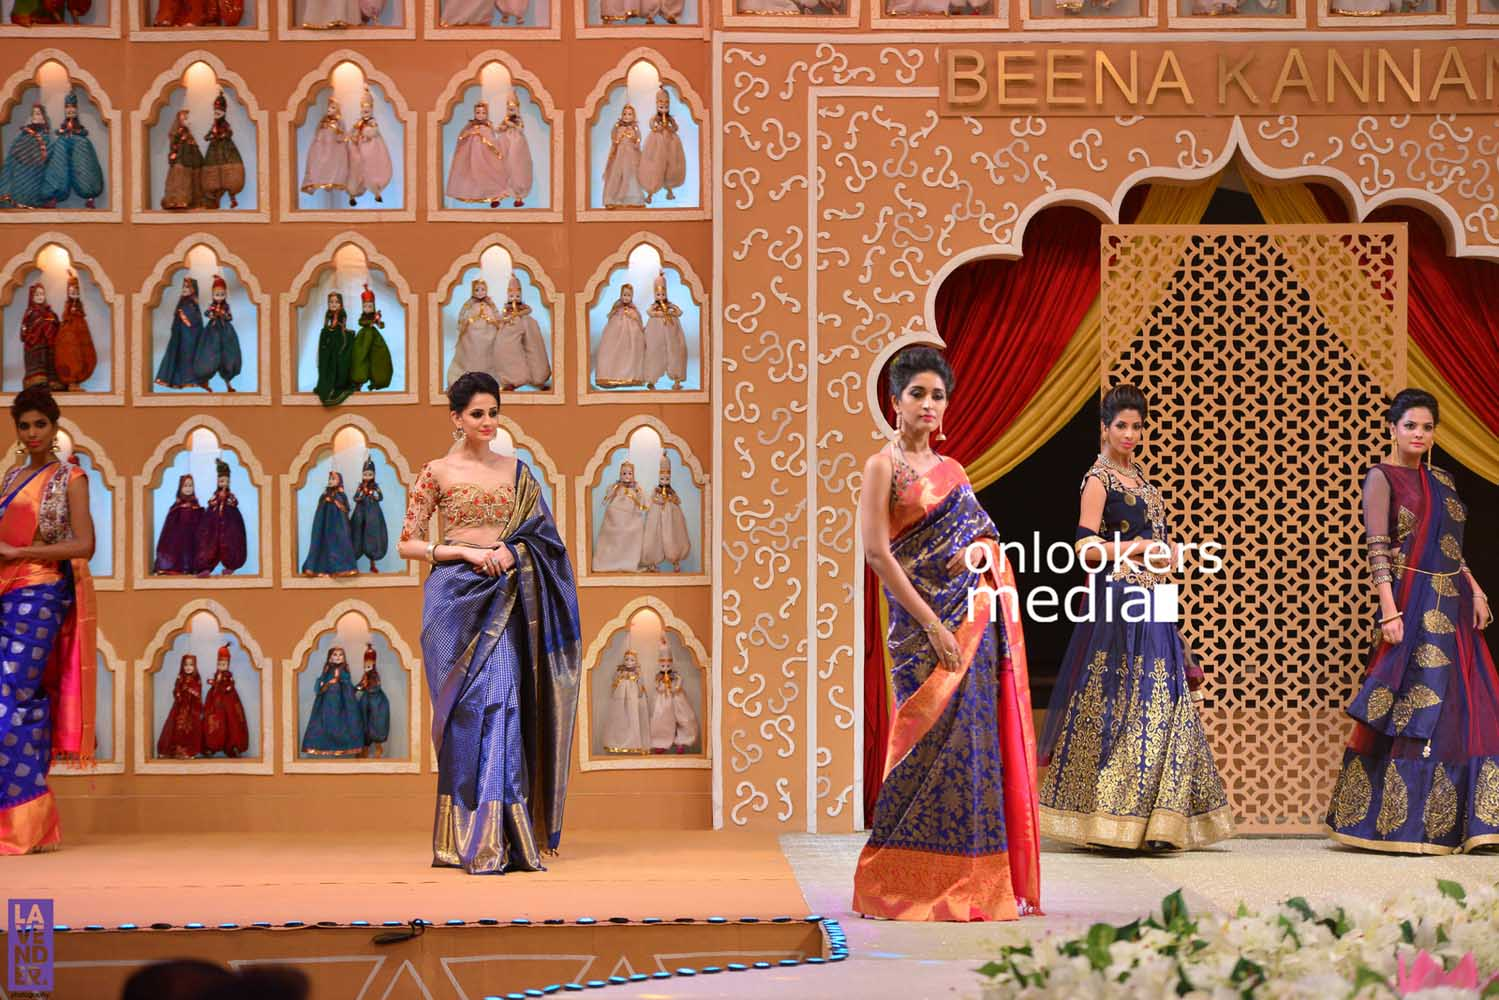 http://onlookersmedia.in/wp-content/uploads/2016/10/Beena-Kannan-Bridal-Show-2016-Stills-Photos-Seematti-147.jpg